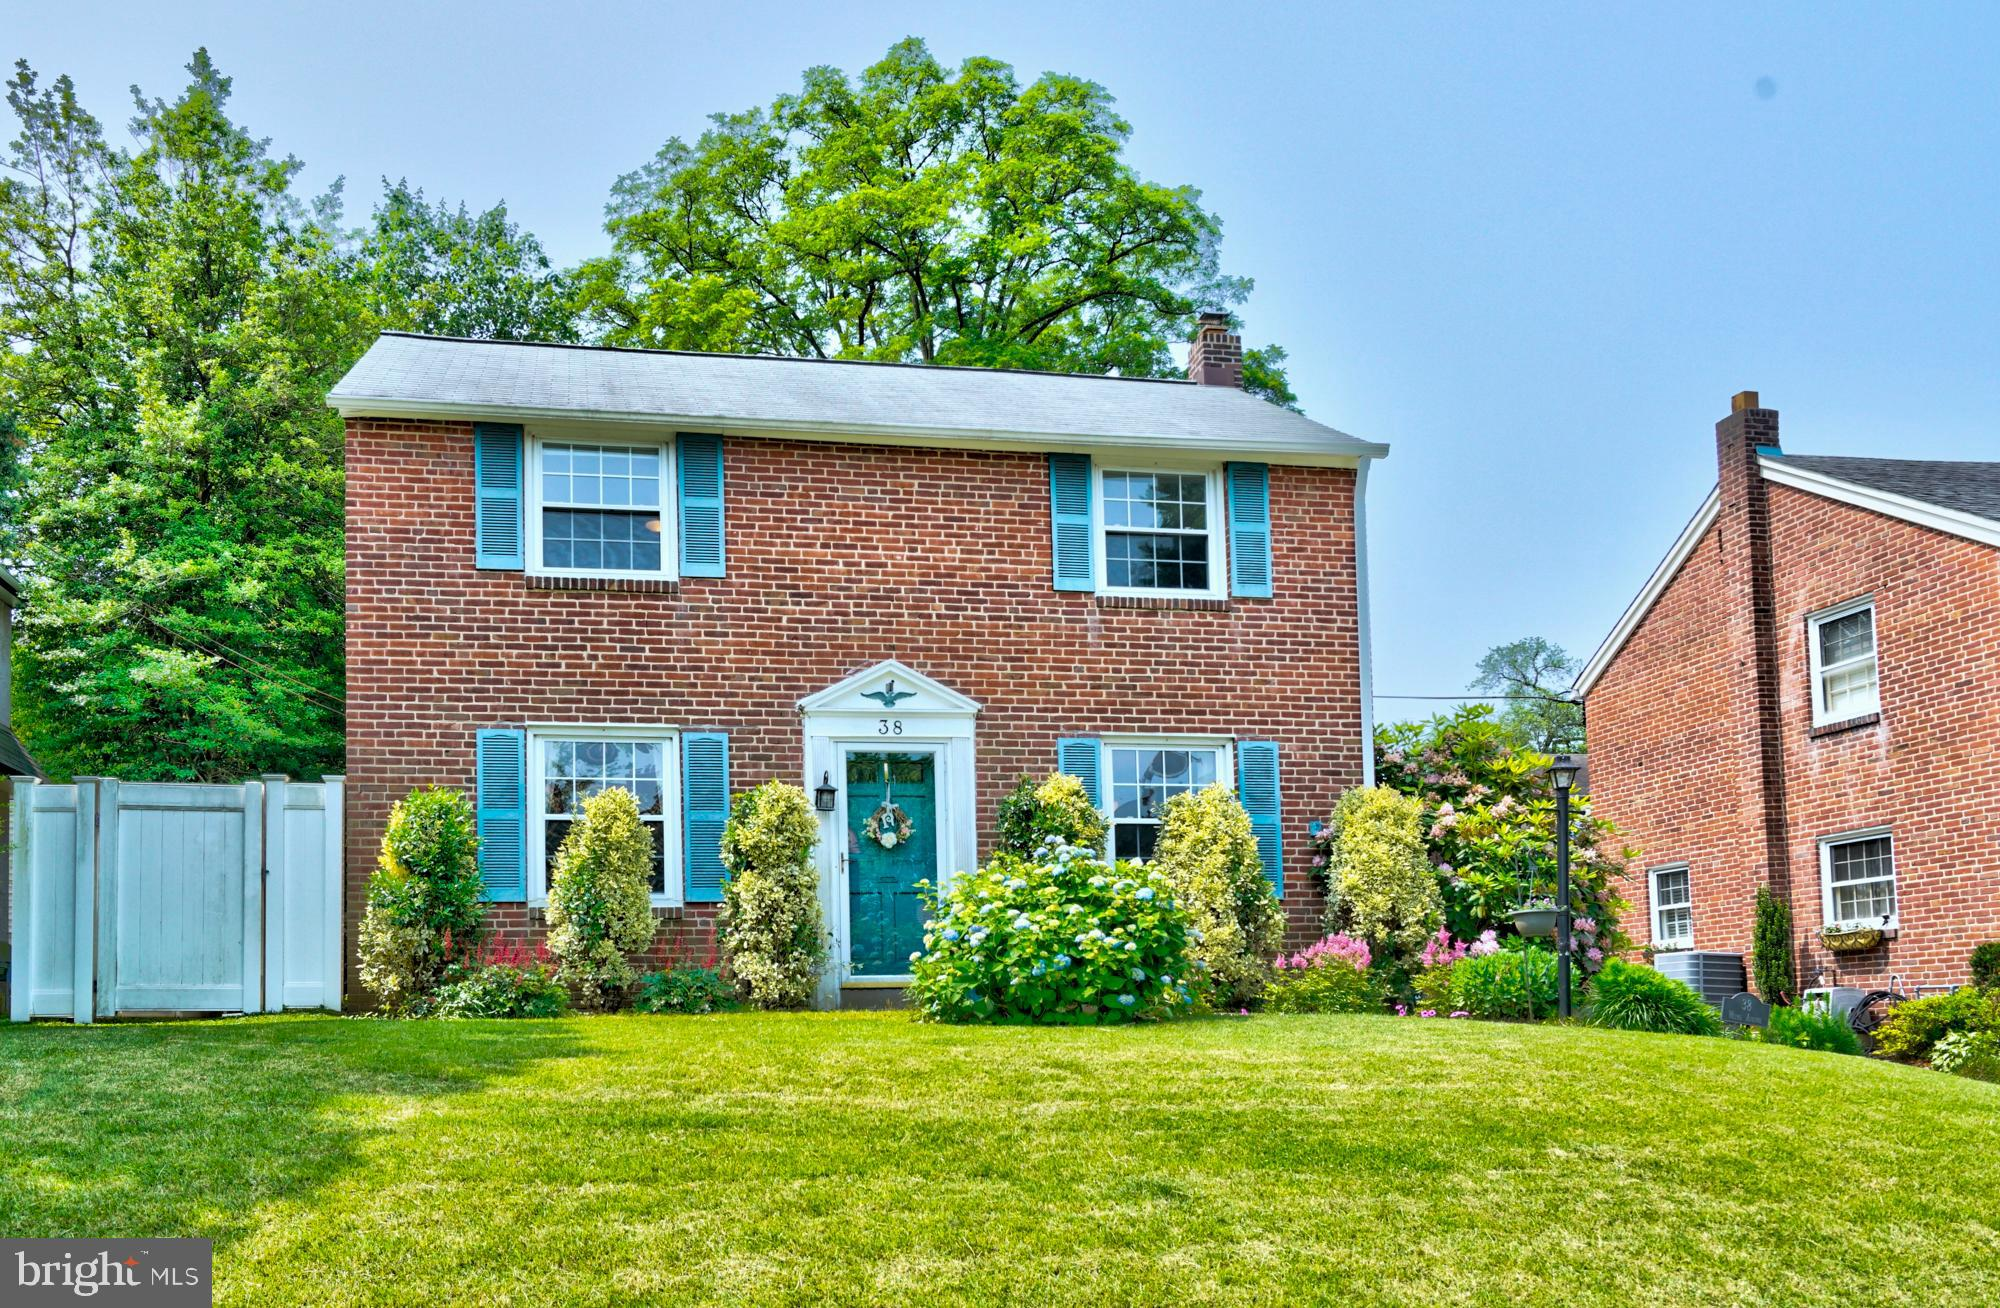 Beautiful 4 bedroom 1 ~ bath brick Colonial is waiting for your family.  Enter to a large sunshine lit Living Room with H/W floors and ceiling trim. Formal Dining room has beautiful ceiling trim and chair rail and continues with the well-kept H/W flooring. The cozy kitchen has tile floors and nice cabinet space.  Next to the Kitchen is the breakfast nook with open counter space that overlooks the Family room. The propane brick fireplace will make your winter nights cozy and warm. Powder room is located next to the kitchen along with an access door to the back yard and one access door to the shared driveway. The photos speak for themselves with a full tiled hall bath and 4 nice size bedrooms with nice closet space. The size of the Master Bedroom w/carpets is larger than most in that style house as the previous owners extended the back of the house for added space.  3 bedrooms have H/W floors and the attic has pulled down stairs with plenty of storage. On the lower level a finished basement with a pool table and accessories that are included in the sale price, recessed lighting, laundry room and utility room and more storage. The access door from the Breakfast nook leads to a beautiful brick patio to enjoy outside summer fun and a nice rear yard. Mature plantings adorn the front and back of the house with a partial fenced in yard. The Shed is situated at the end of the shared driveway. Central air finishes off this beautiful house.  Located in walking distance to Septa Trolley lines, shopping and local eateries.   Included; Washer, Dryer, Refrigerator, Pool Table with accessories.